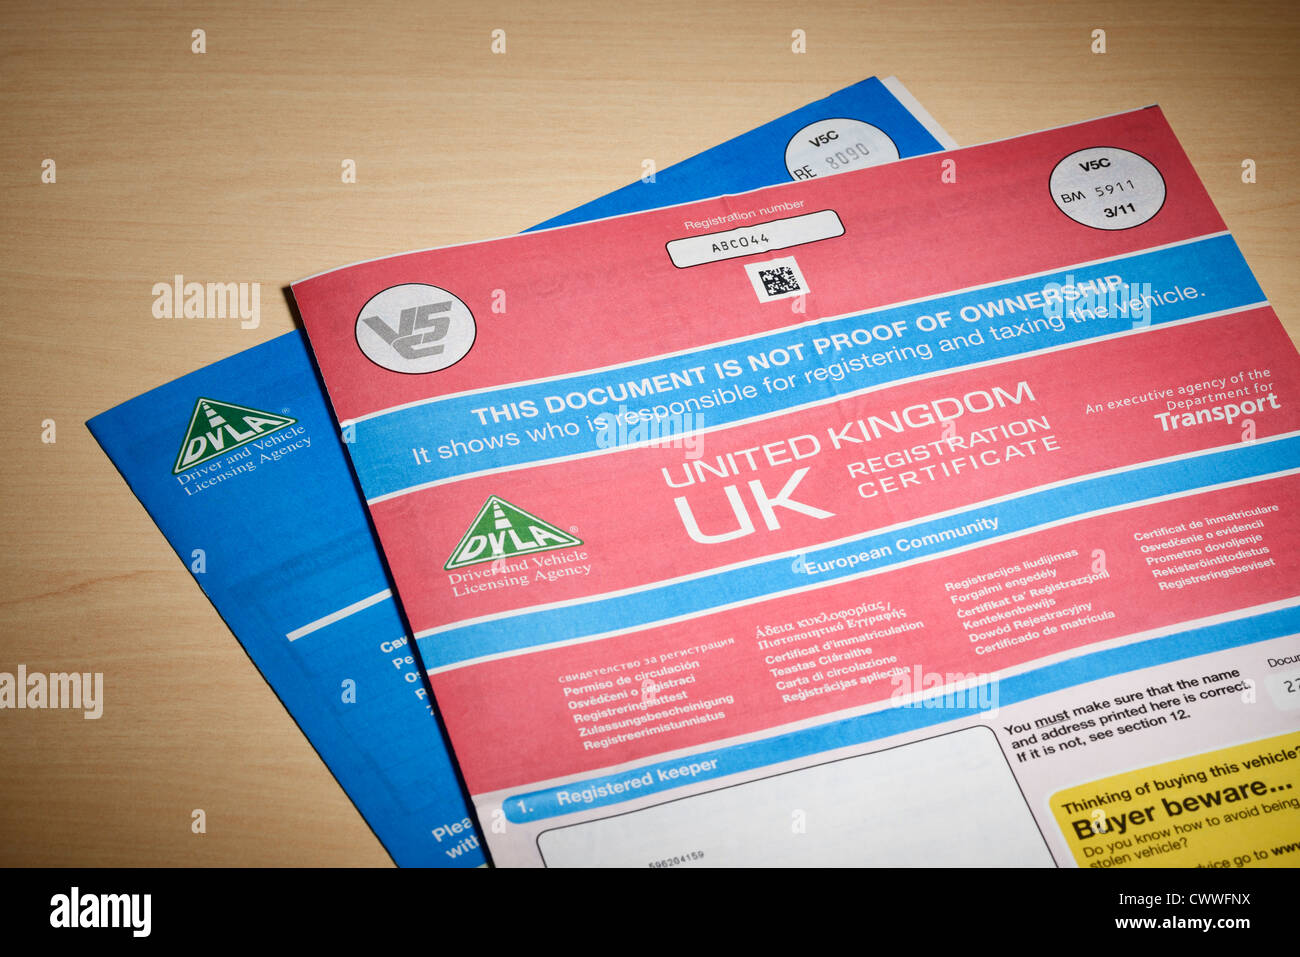 Dvla Vehicle Registration Certificate Stock Photo Royalty Free